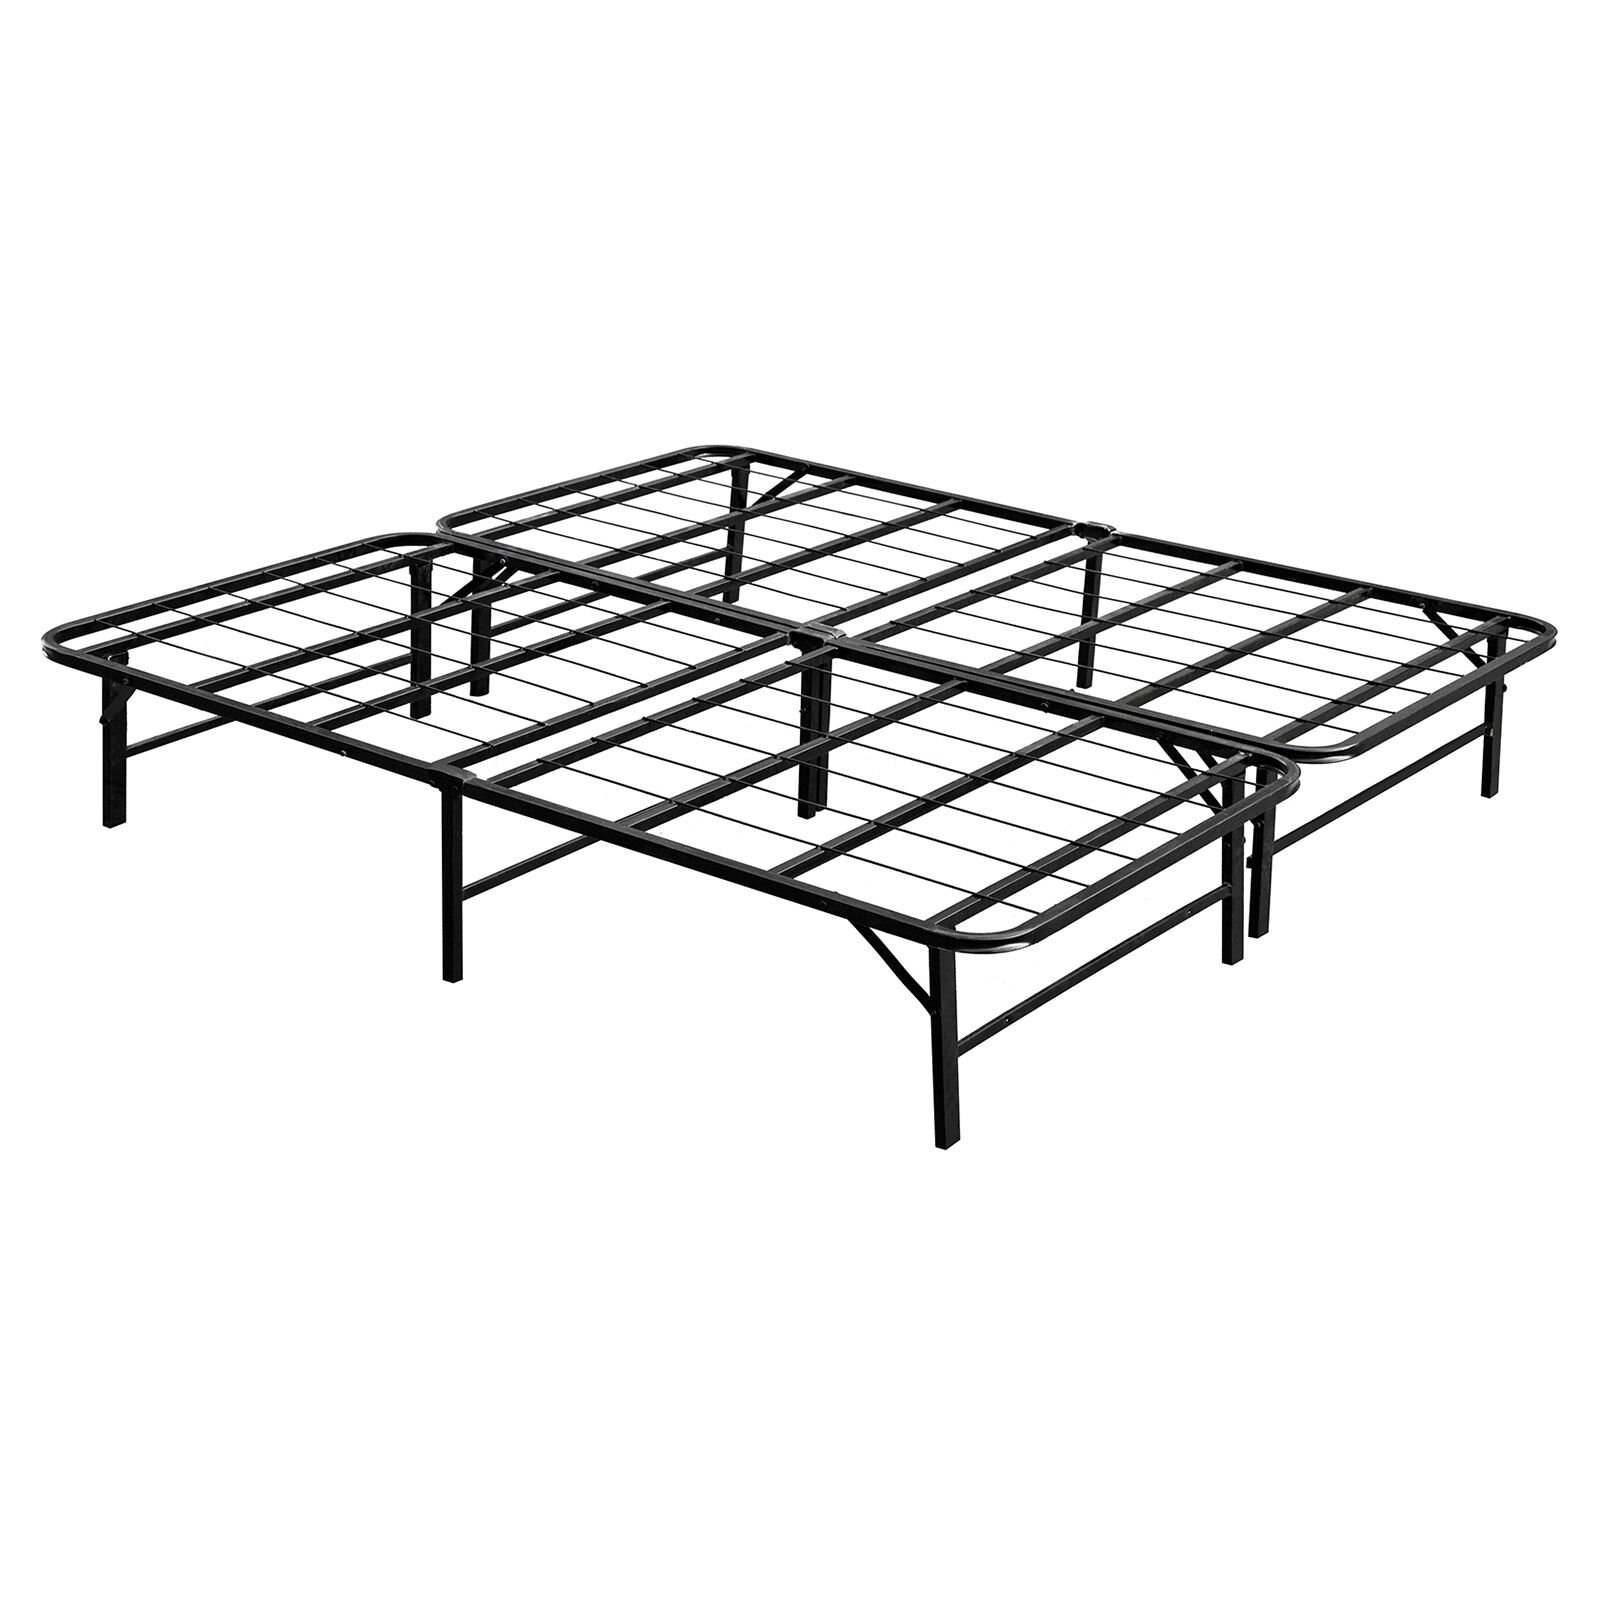 Mattress Platform Metal Mattress Platform Frame King